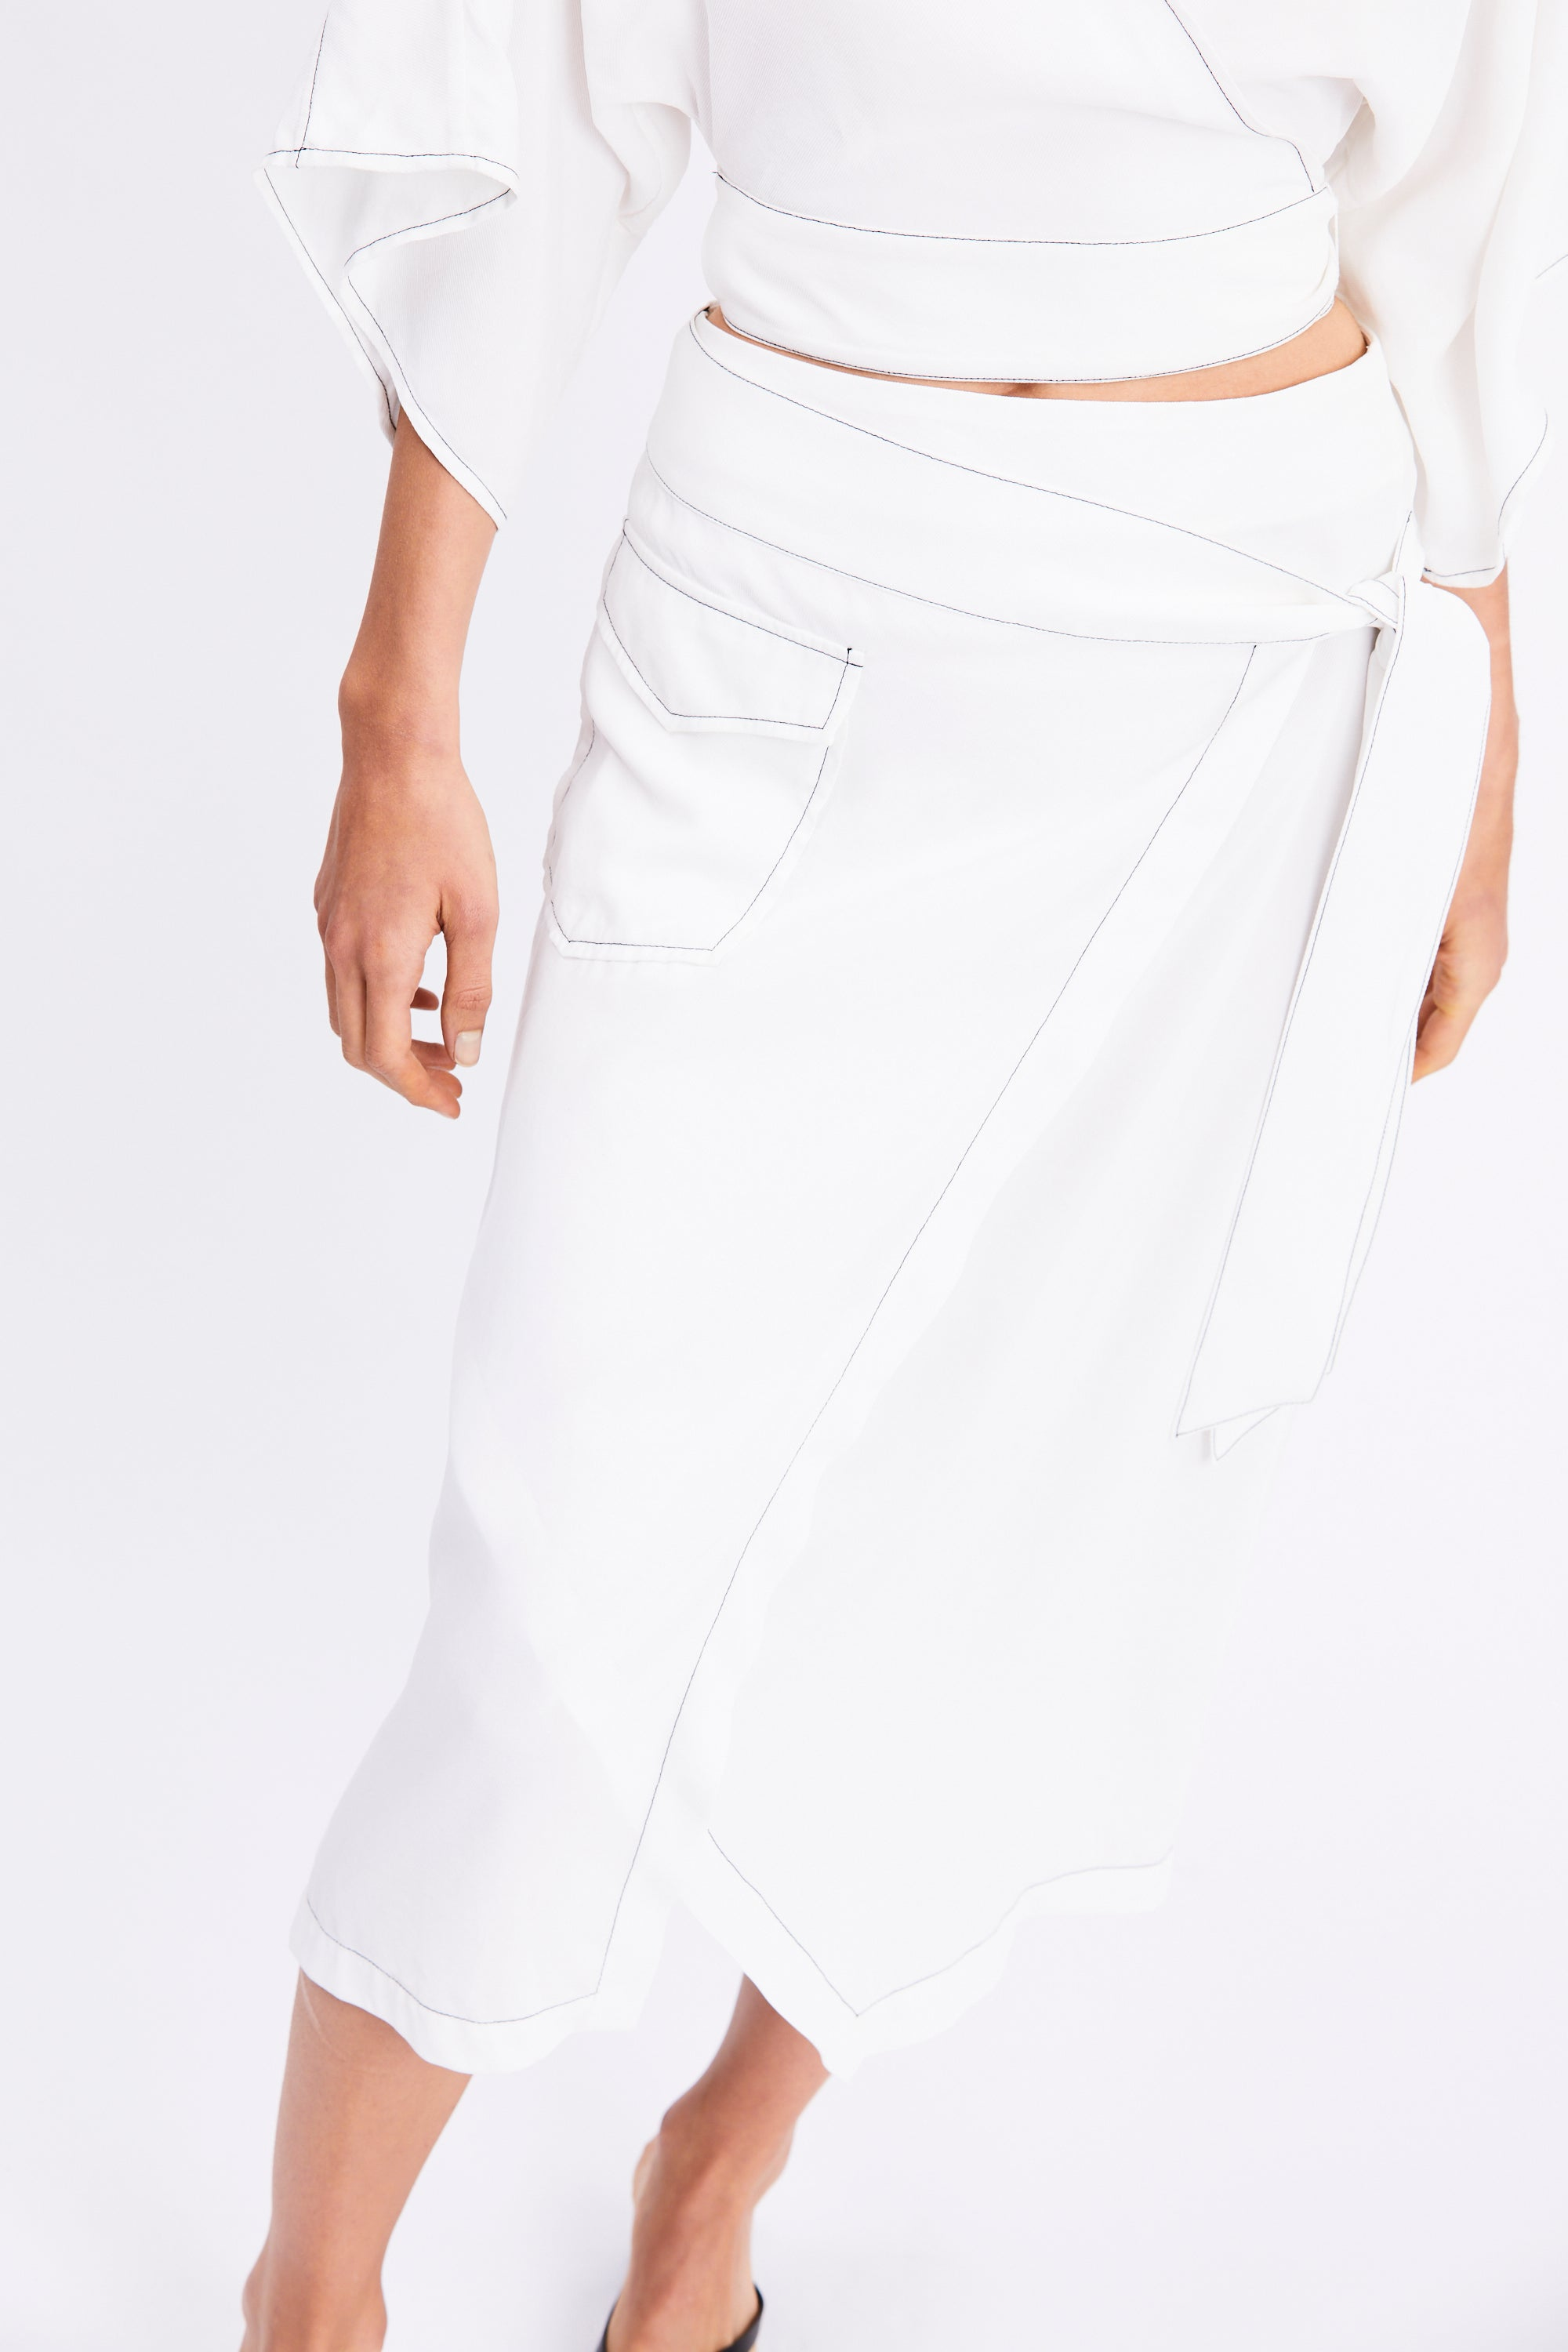 WESTERN WRAP SKIRT | OFF WHITE